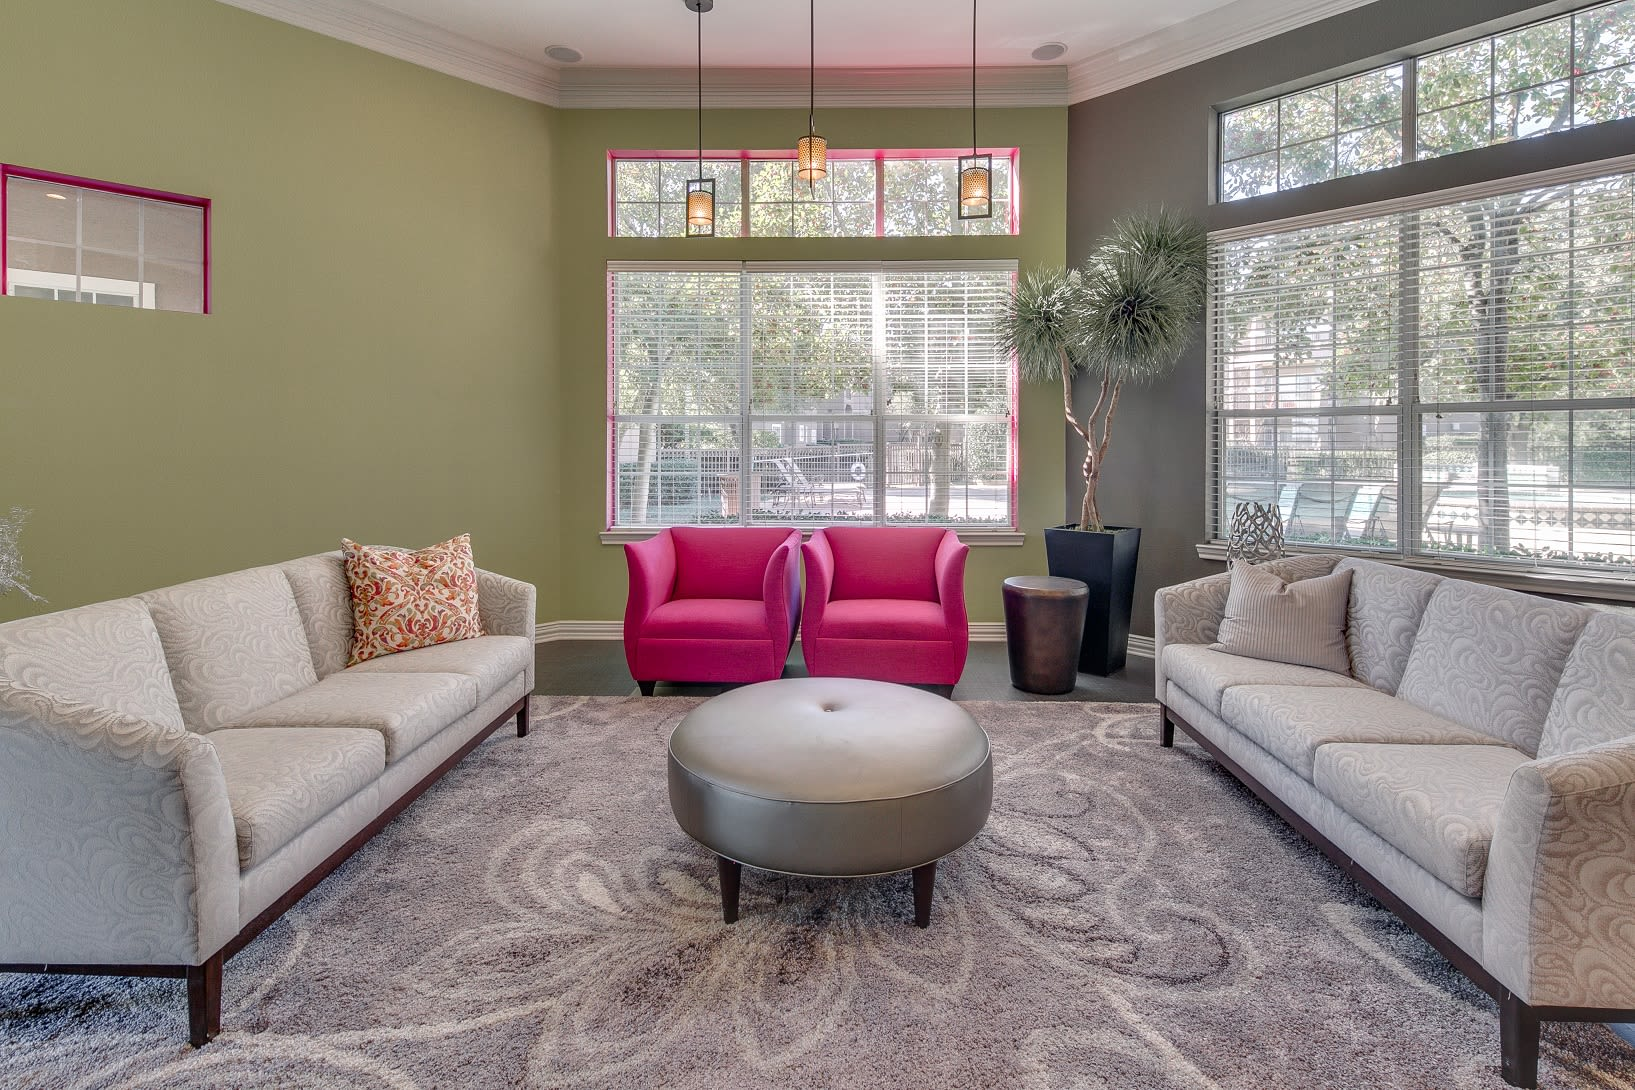 Inside our leasing office at The View at Lakeside in Lewisville, Texas